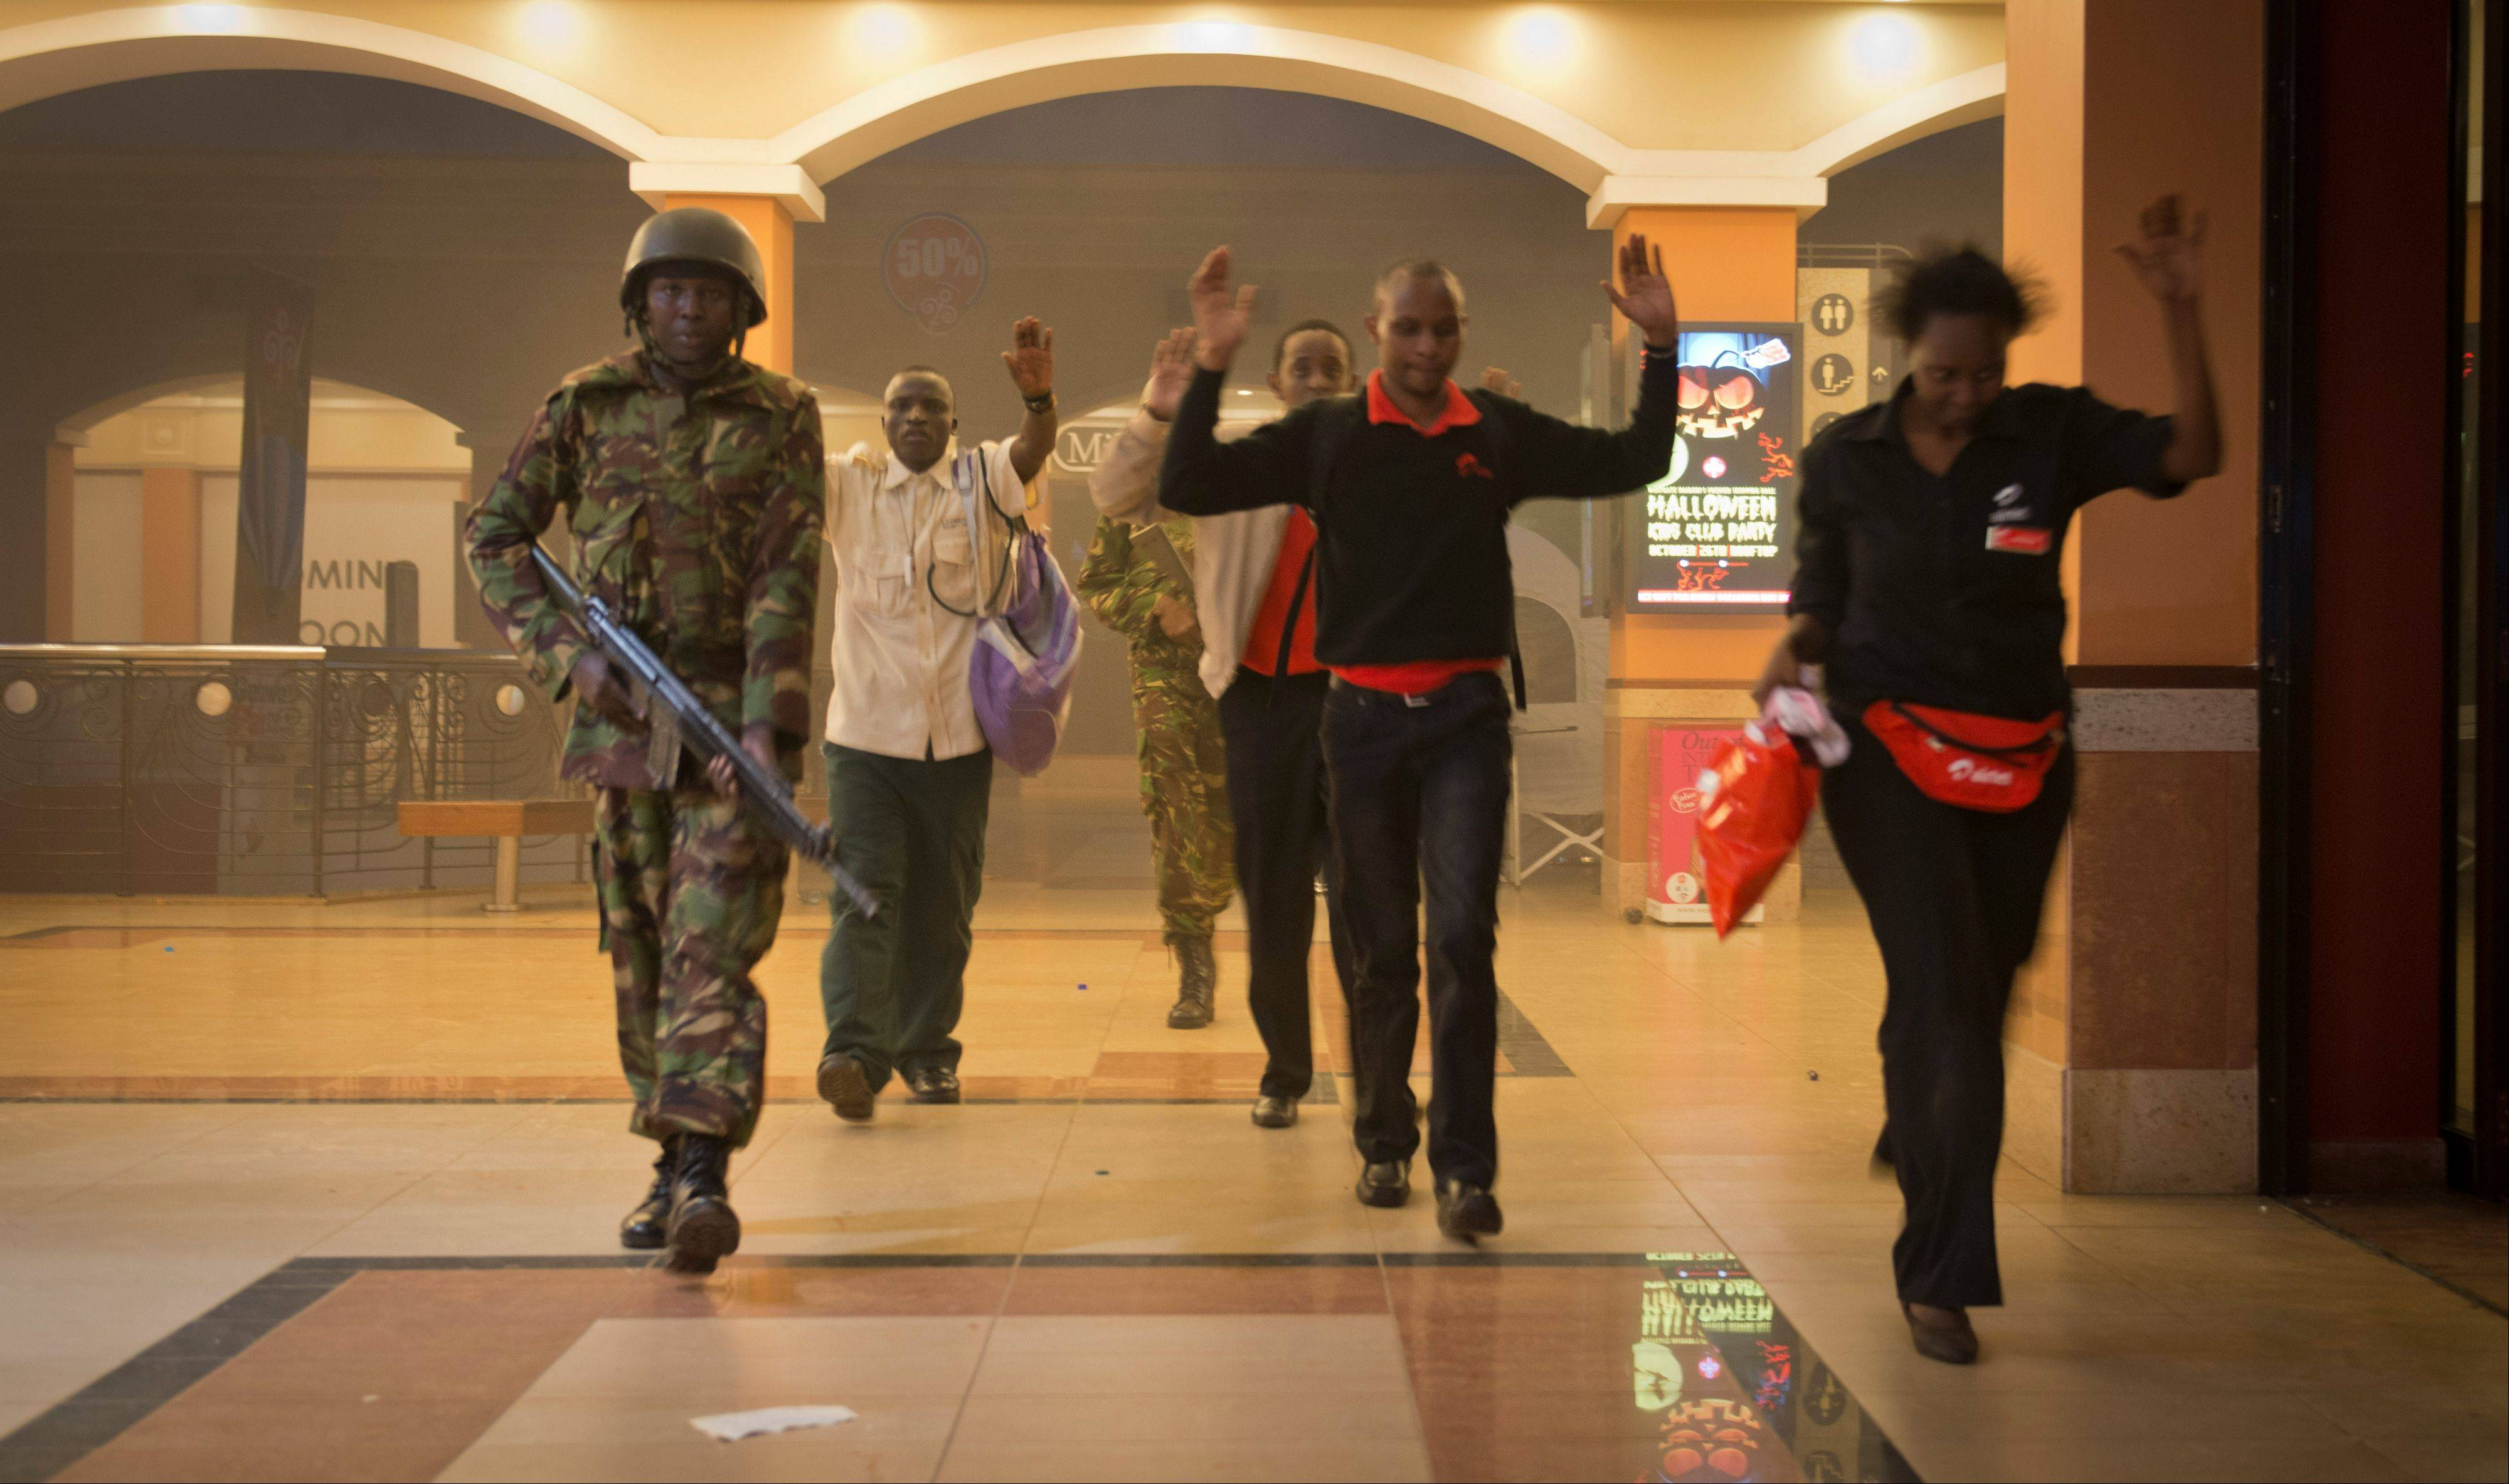 Civilians who had been hiding during the gun battle hold their hands in the air as a precautionary measure before being searched by armed police leading them to safety, inside the Westgate Mall in Nairobi, Kenya Saturday, Sept. 21, 2013. Gunmen threw grenades and opened fire Saturday, killing at least 22 people in an attack targeting non-Muslims at an upscale mall in Kenya's capital that was hosting a children's day event, a Red Cross official and witnesses said.